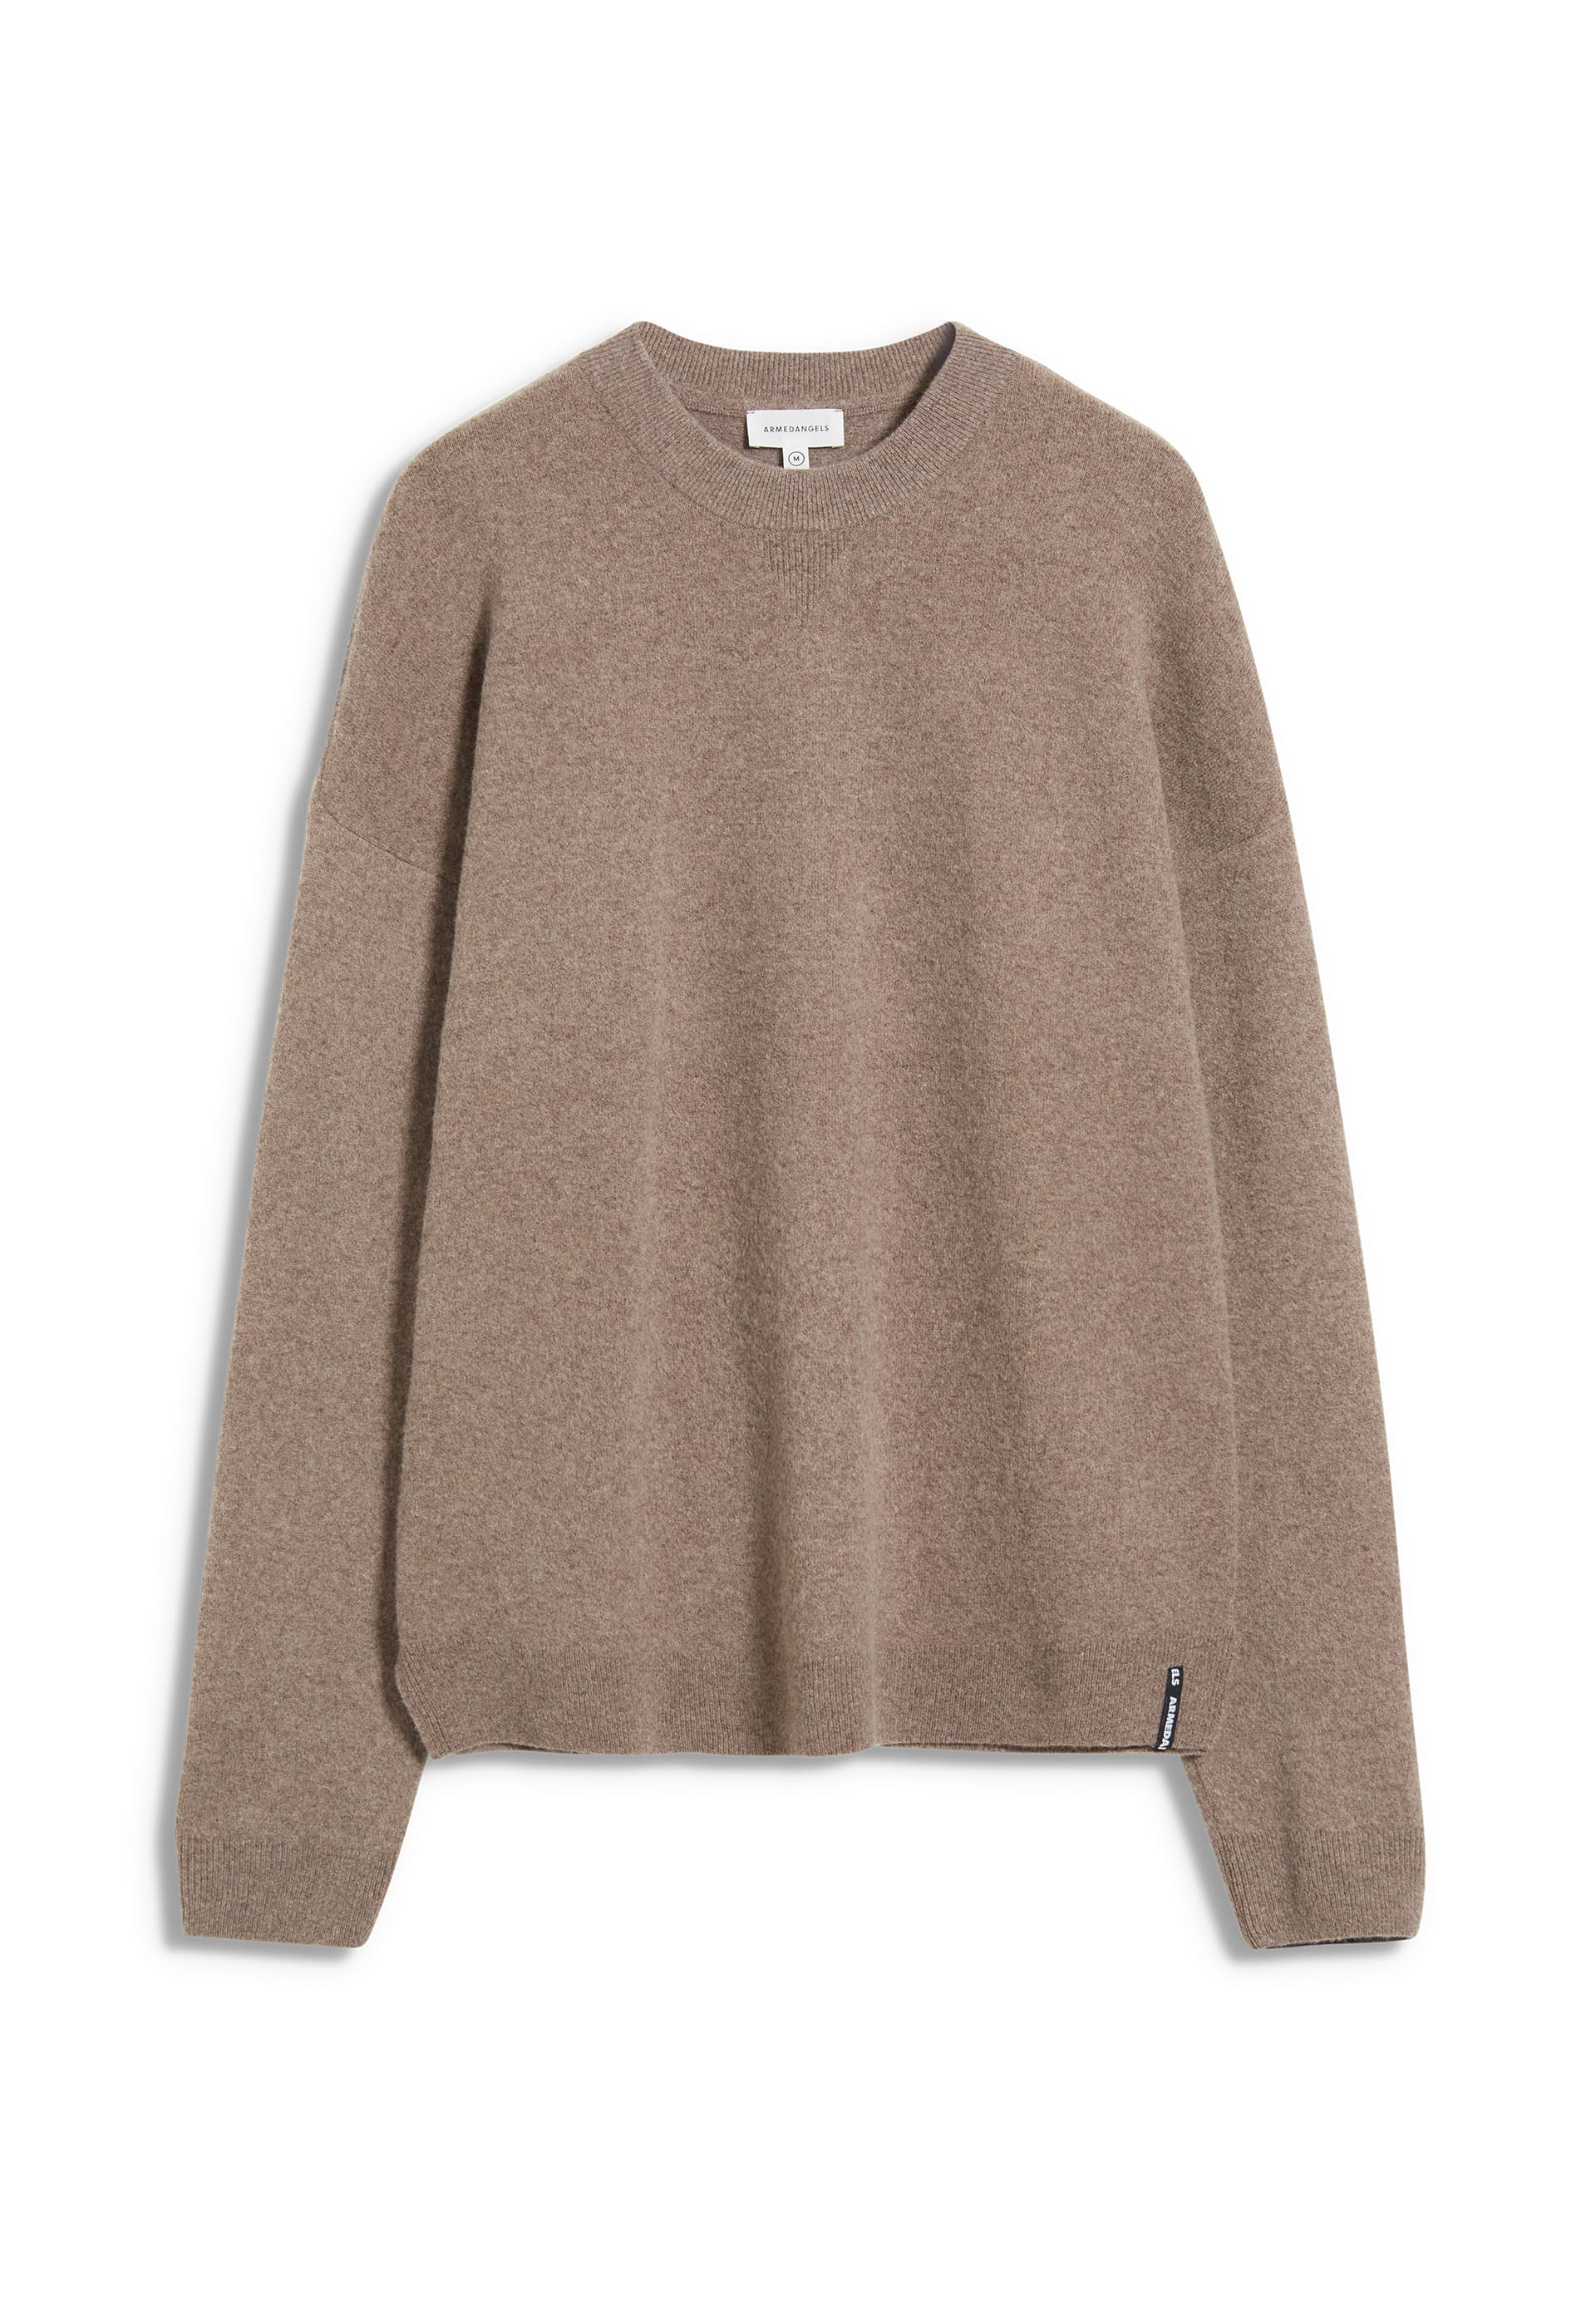 LOAAN RECYCLED WOOL Pullover aus Bio-Woll Mix